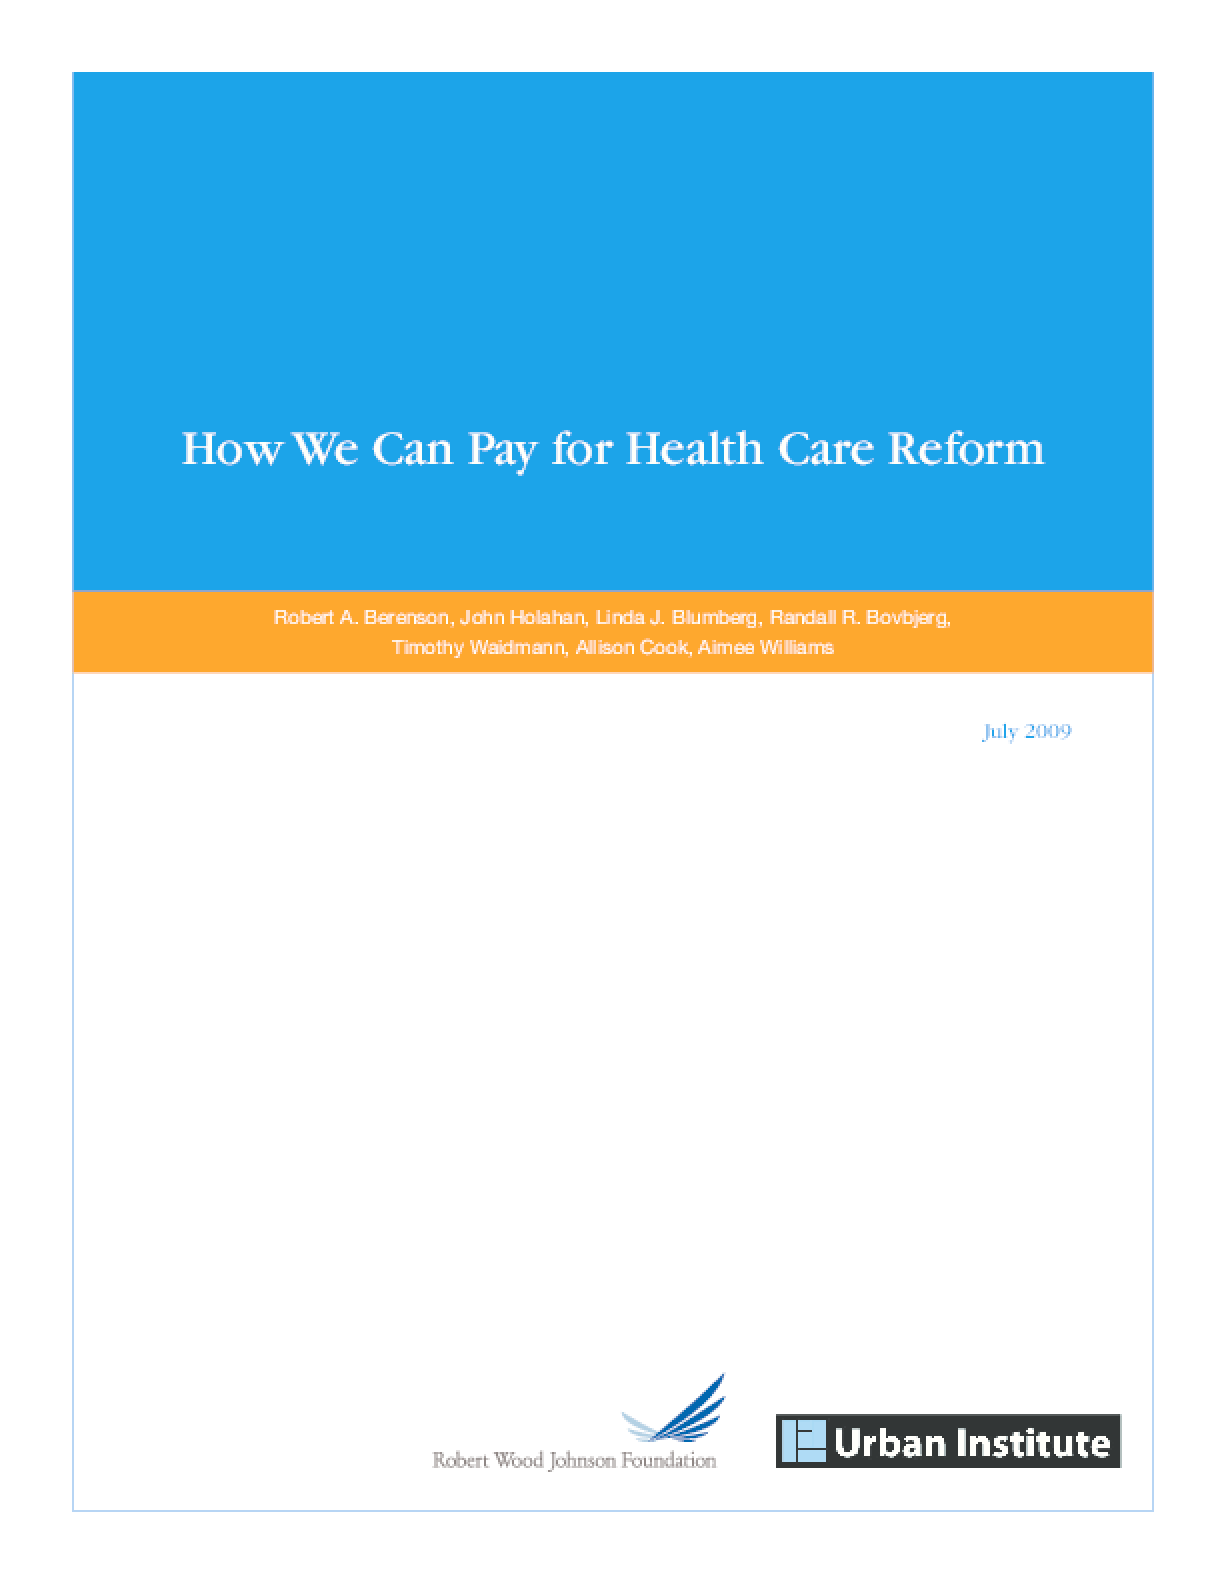 How We Can Pay for Health Care Reform